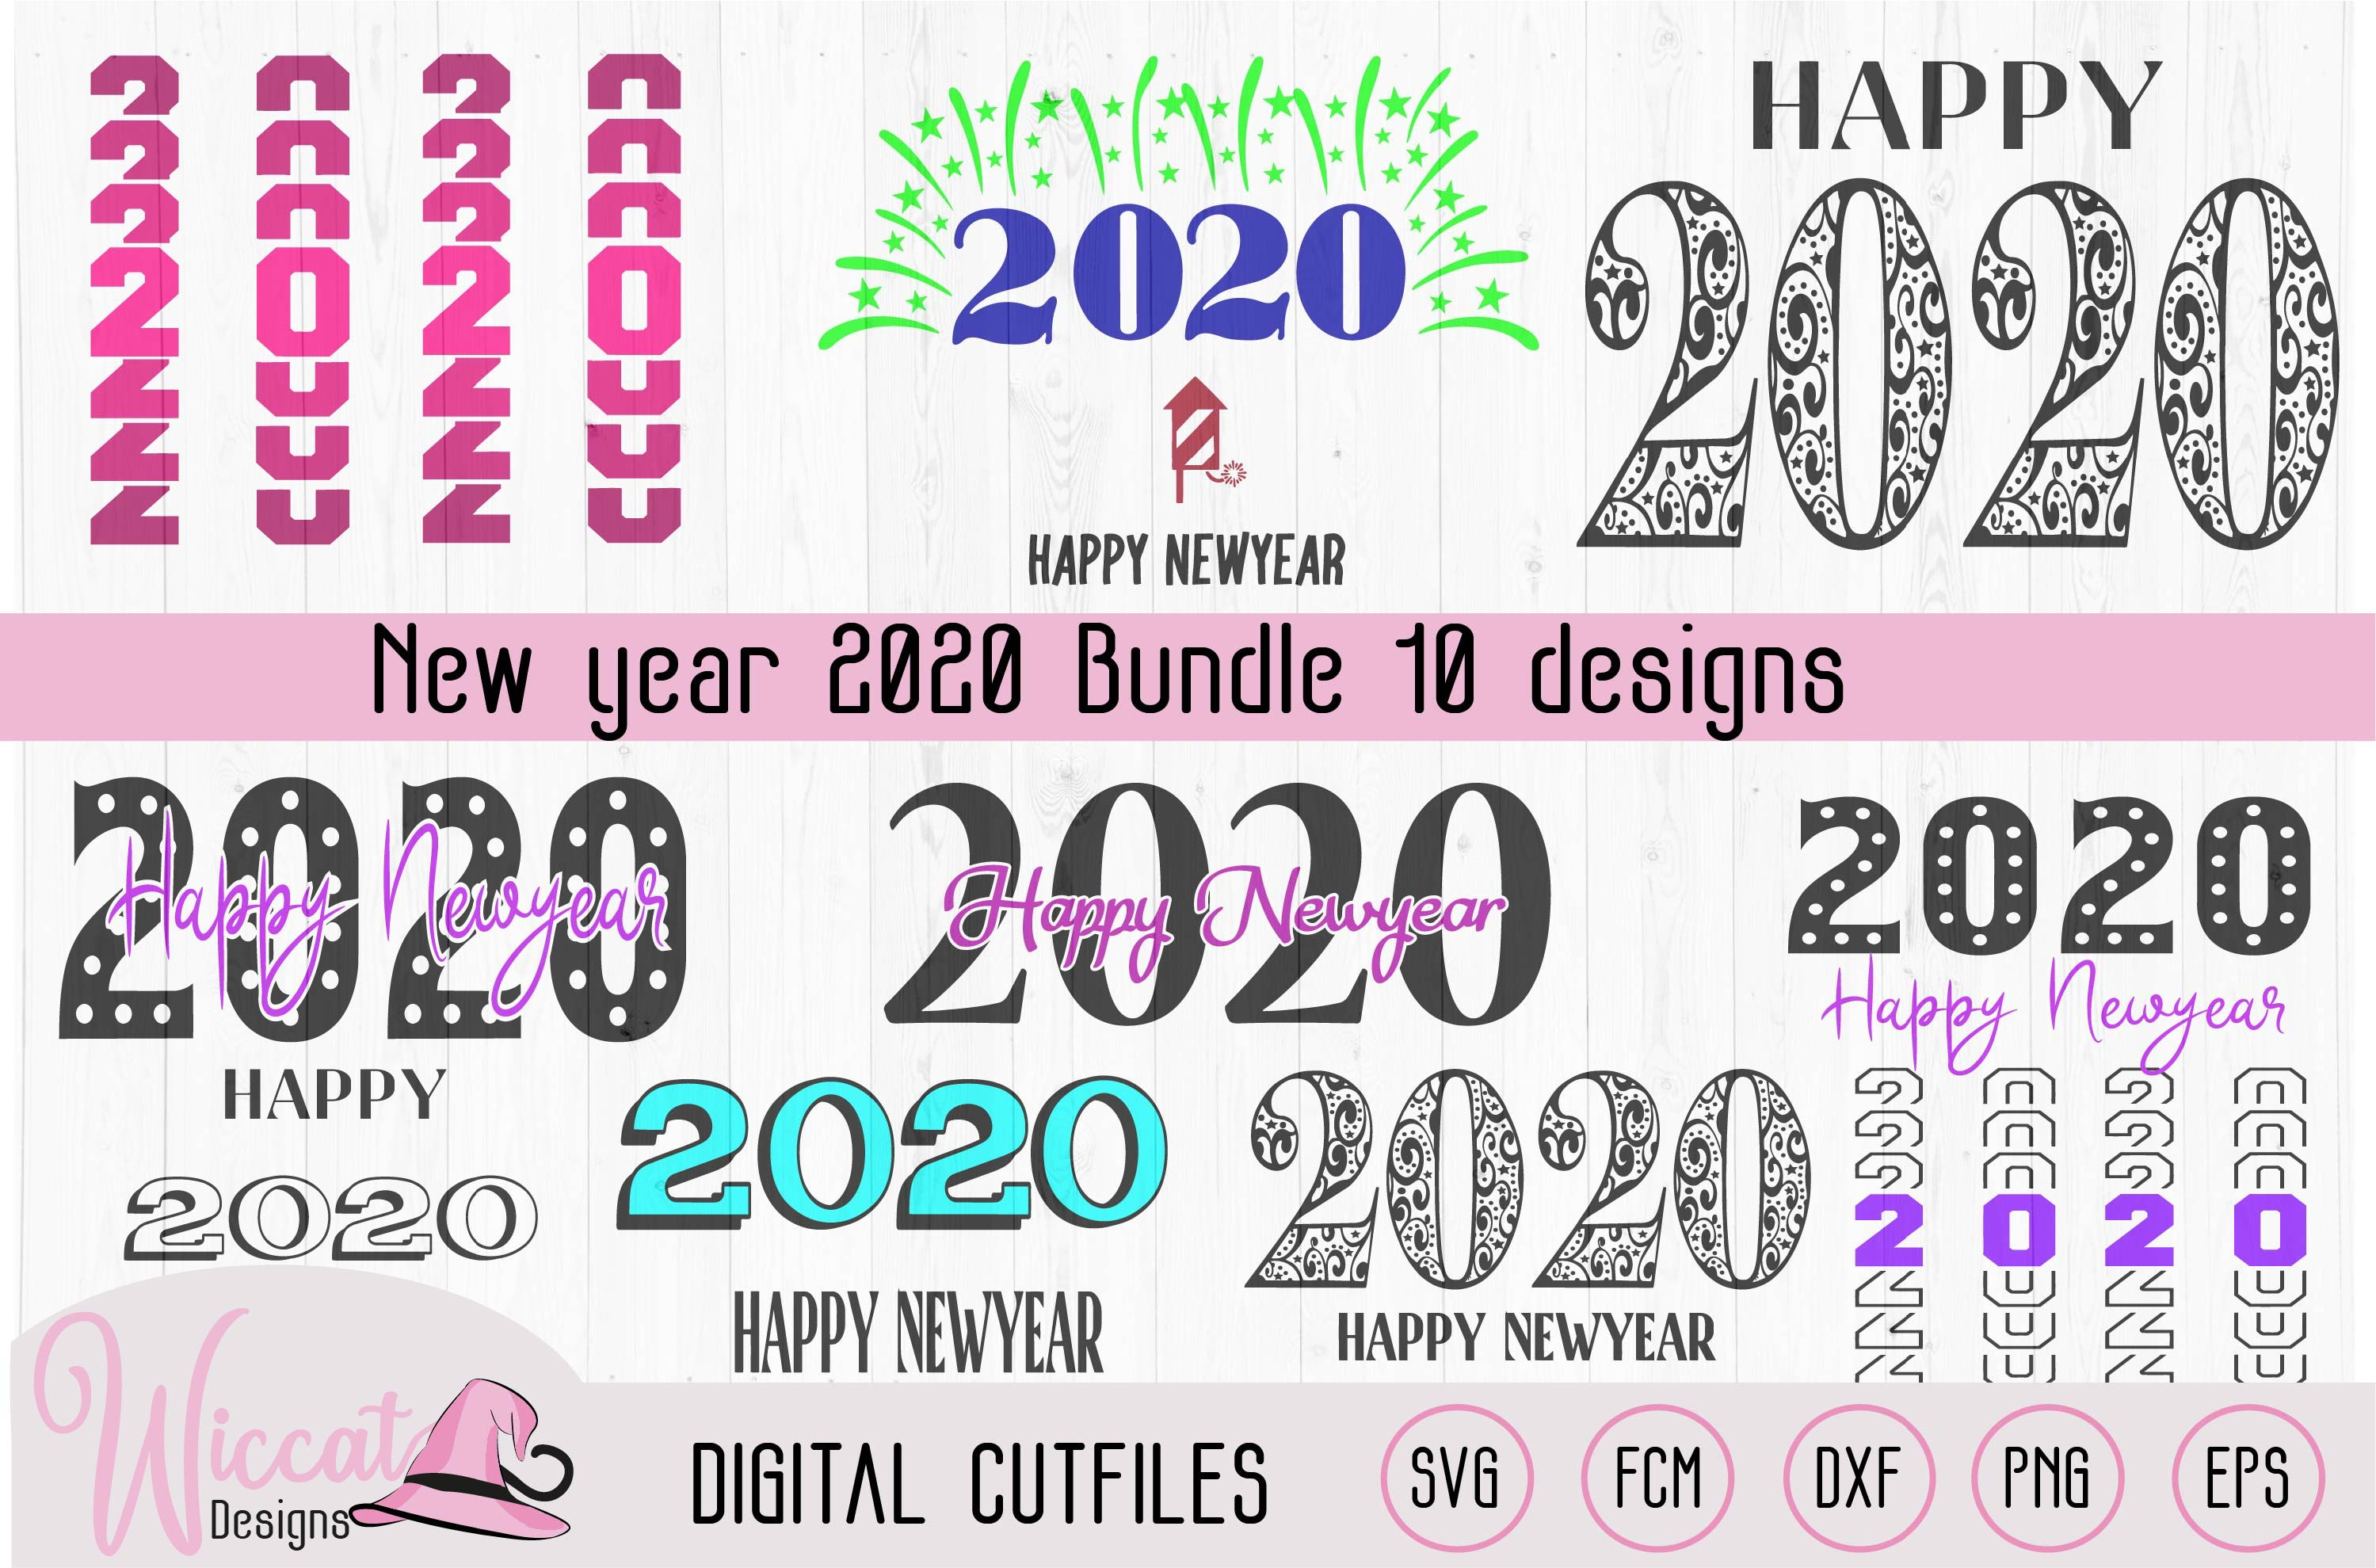 Happy new year 2020 word art example image 2